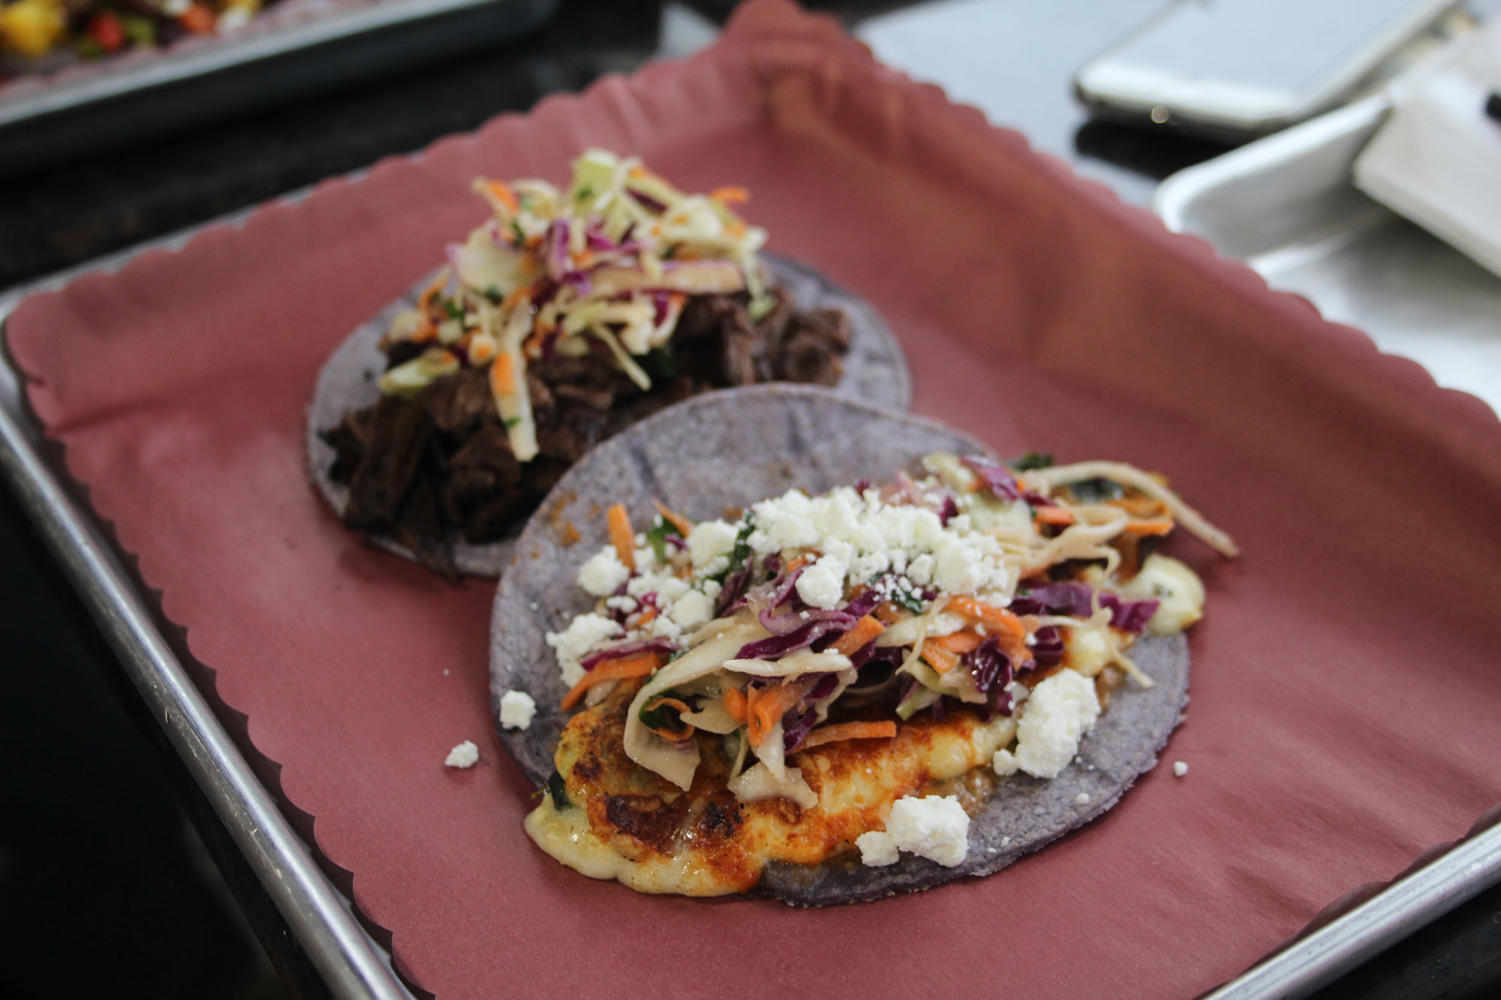 A taco sold at Altiro, a Latin fusion restaurant in the heart of downtown LaGrange. (Voytovich/LION)